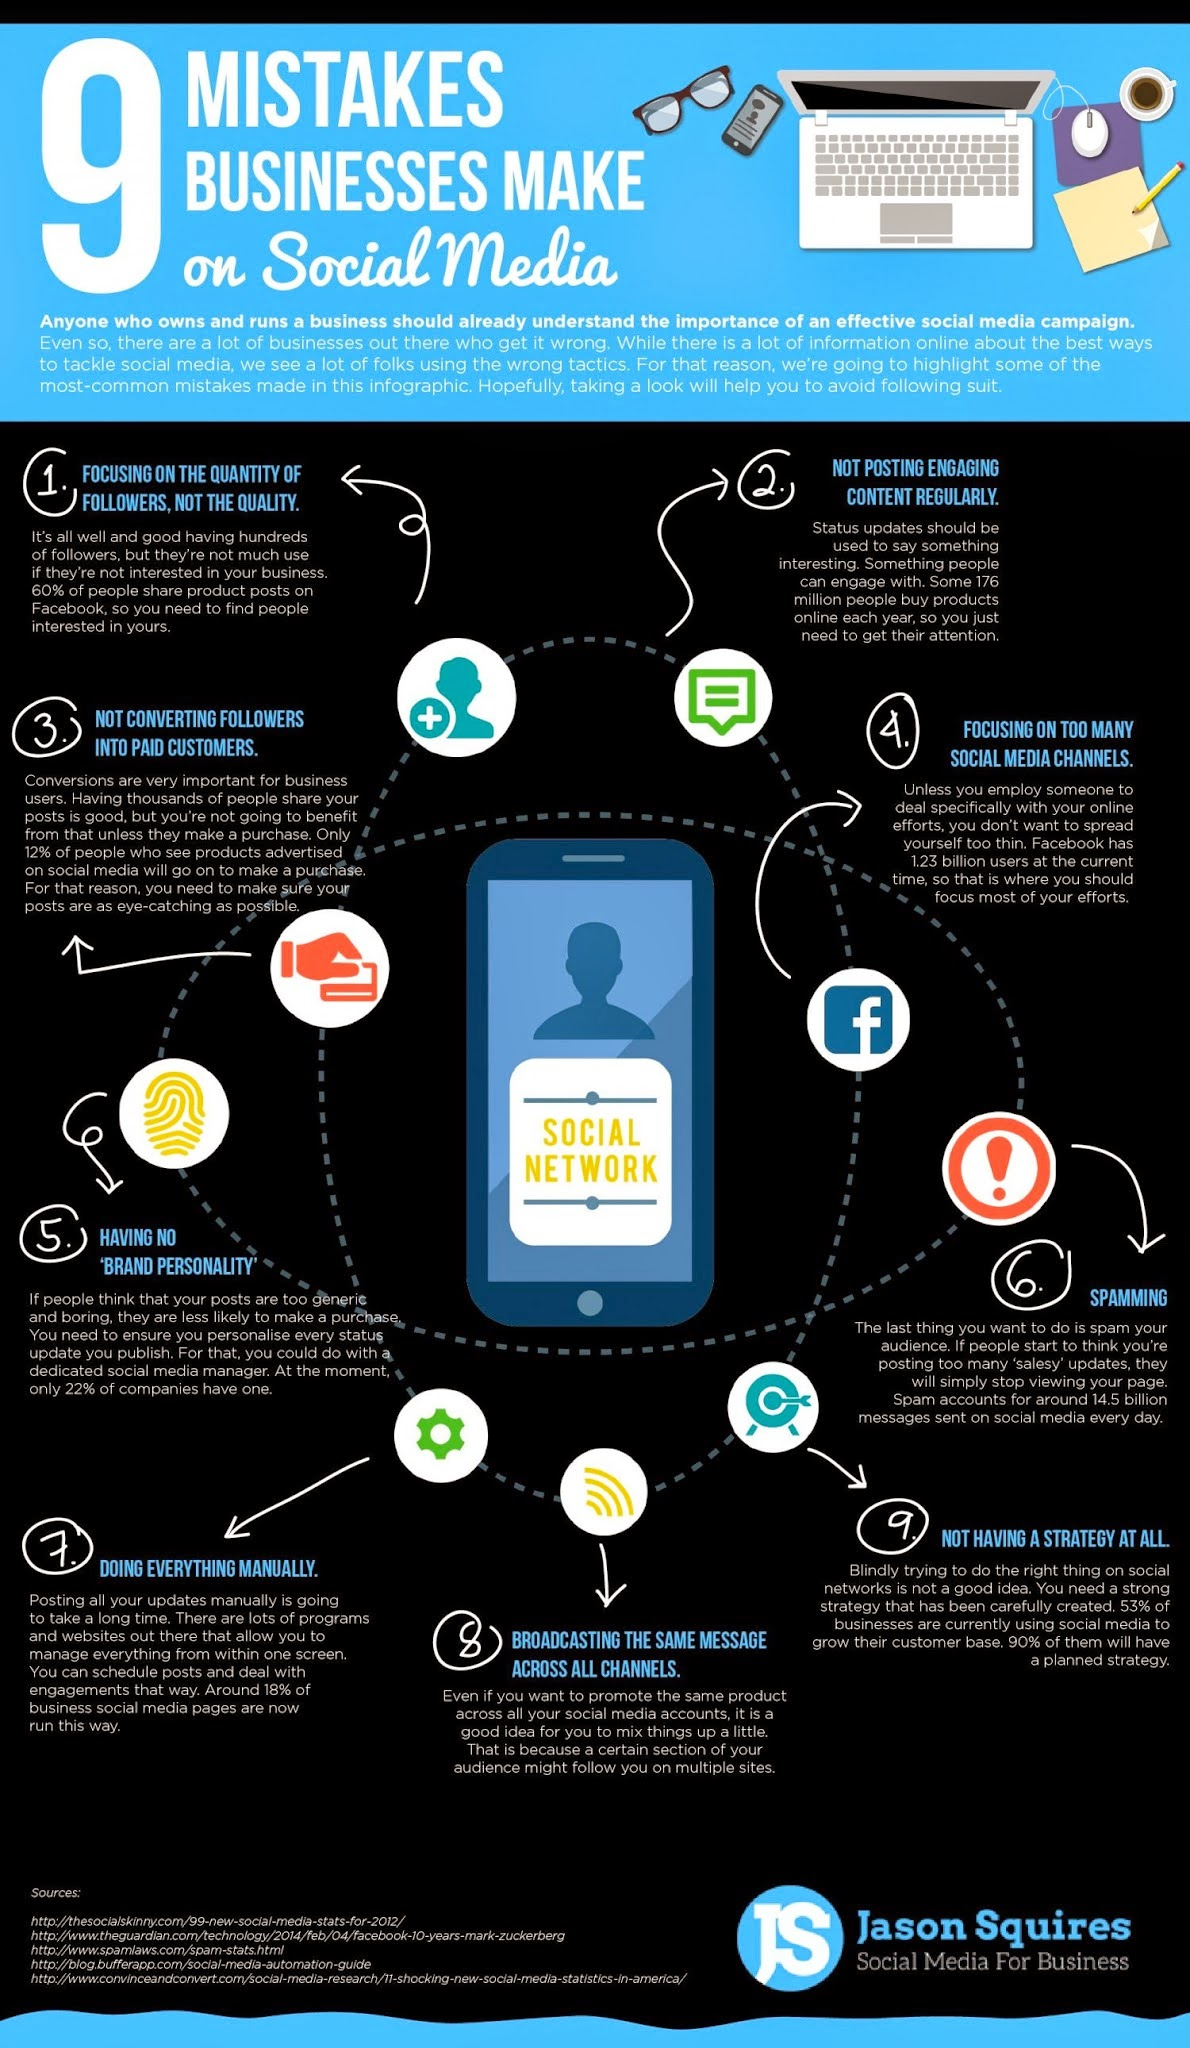 9-mistakes-businesses-make-social-media-infographic